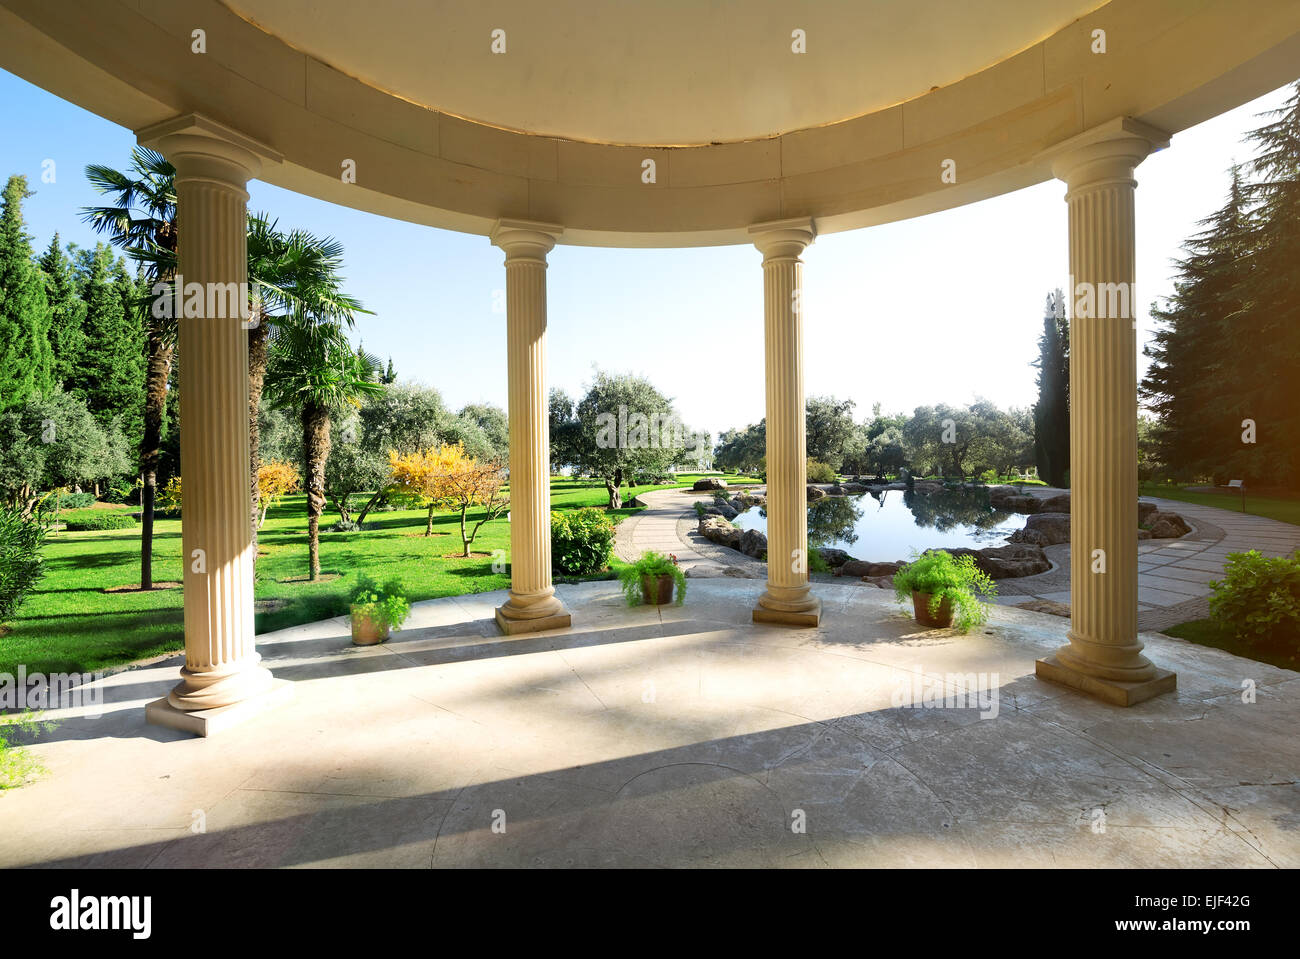 Arbour with columns near lake in the park - Stock Image